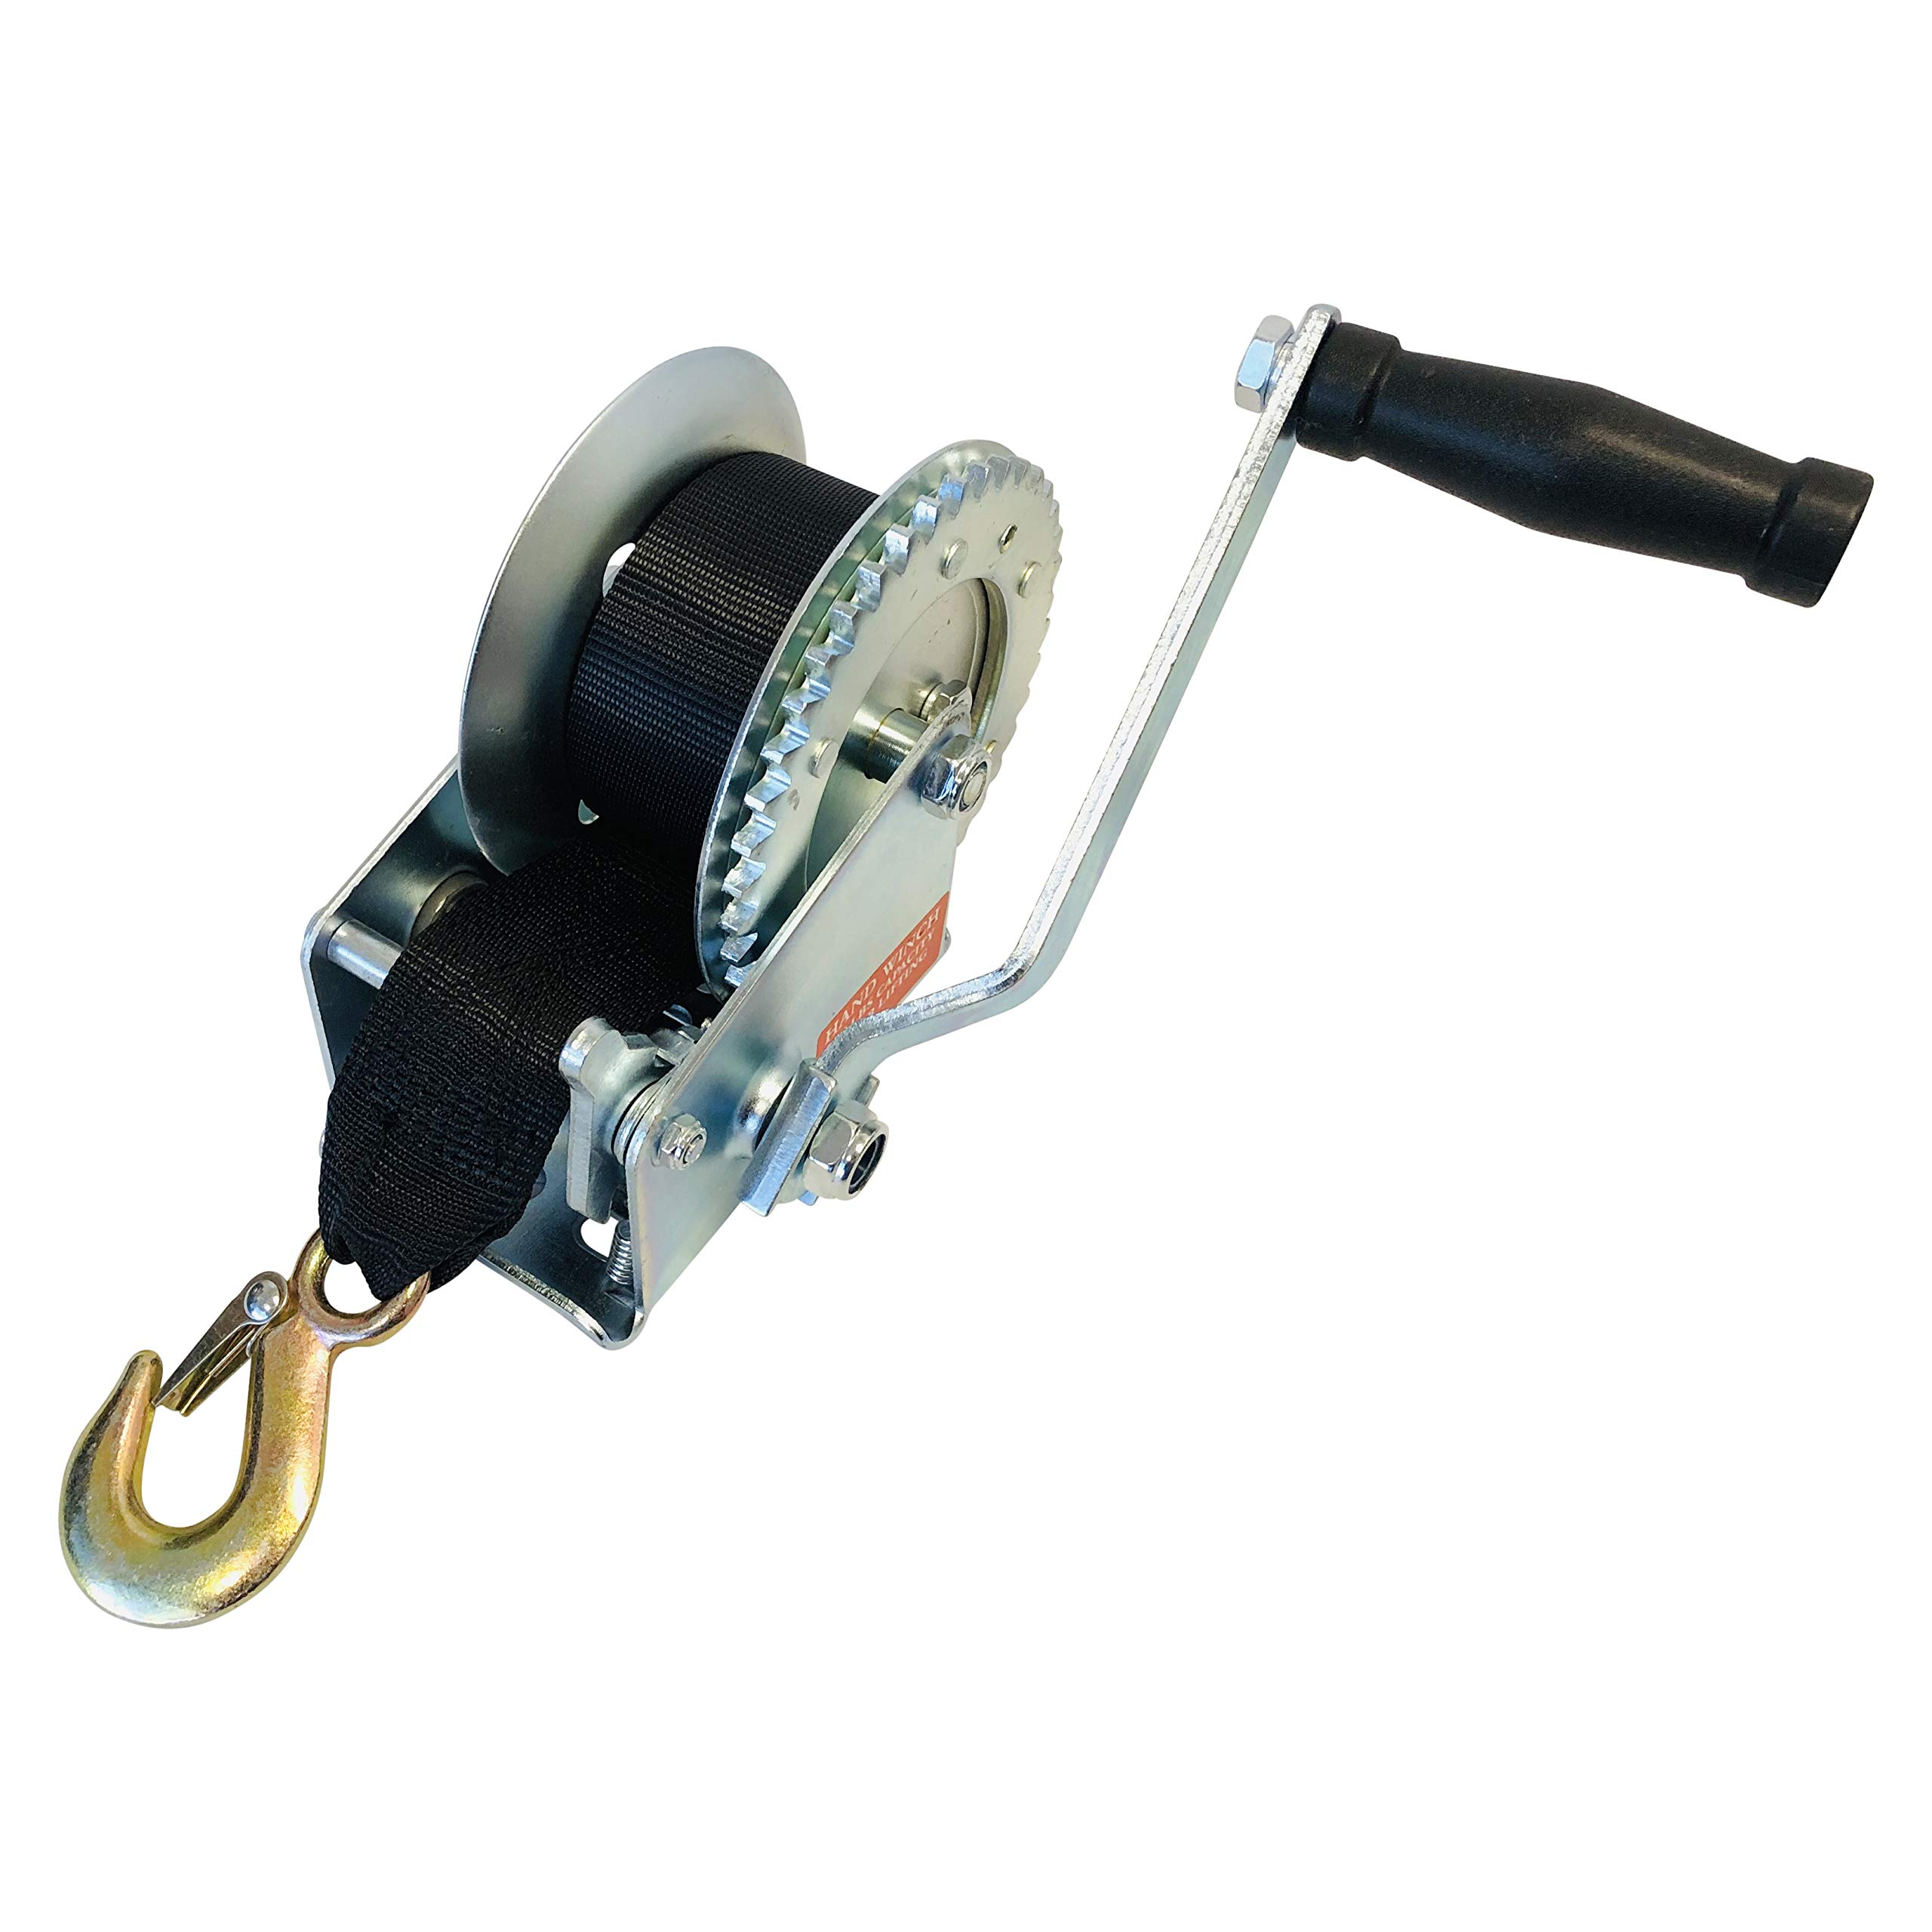 Professional EZ Travel Collection Jet Ski and Boat Trailer Hand Crank Winch (1200 LBS Rated) by Professional EZ Travel Collection